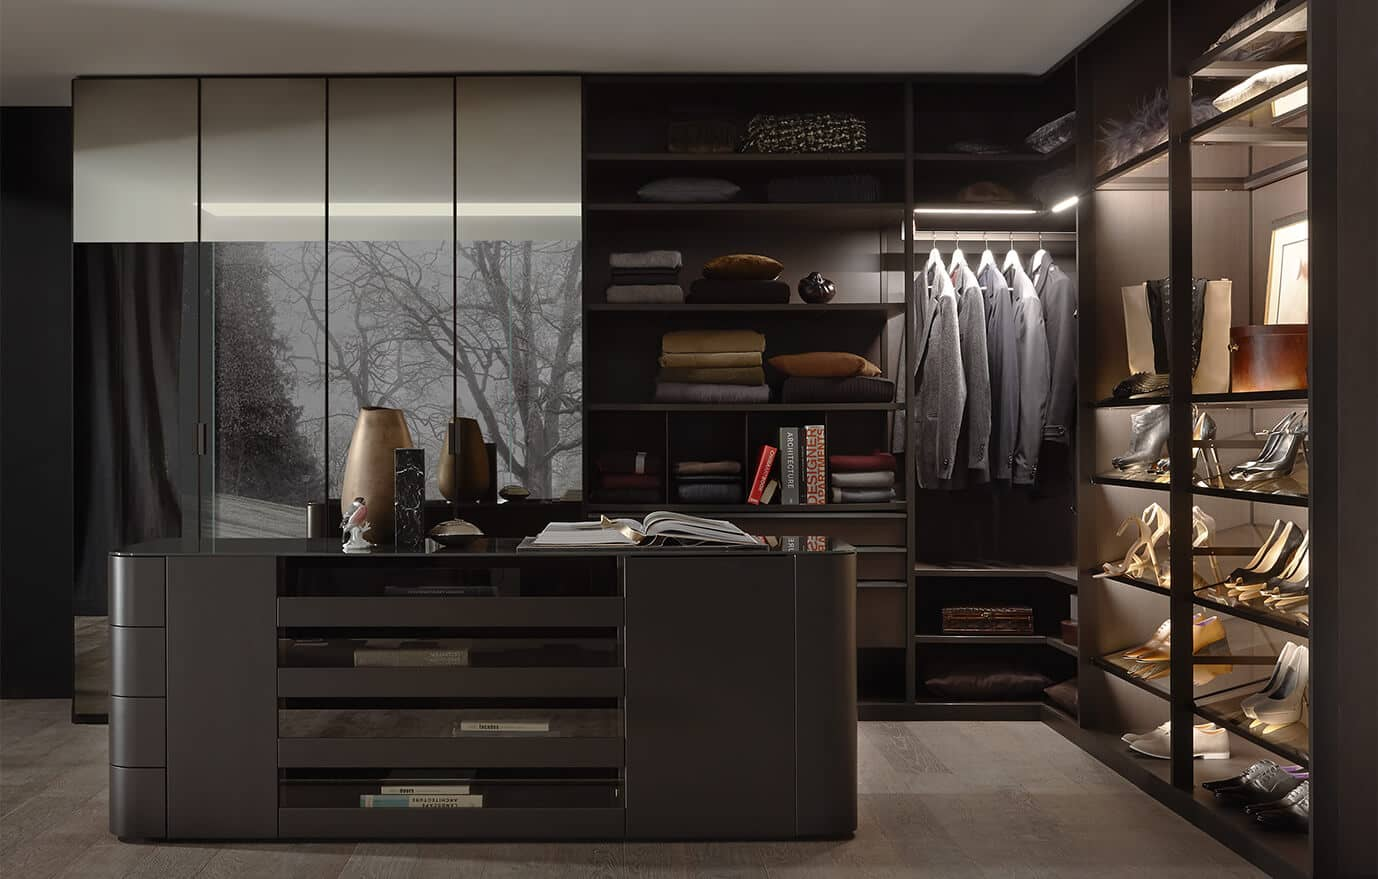 The picture depicts a walk-in wardrobe from the Walk_in range by Ars Nova Collection with a cabinet in the middle, a mirrored cabinet and an open illuminated element which extends past the corner.